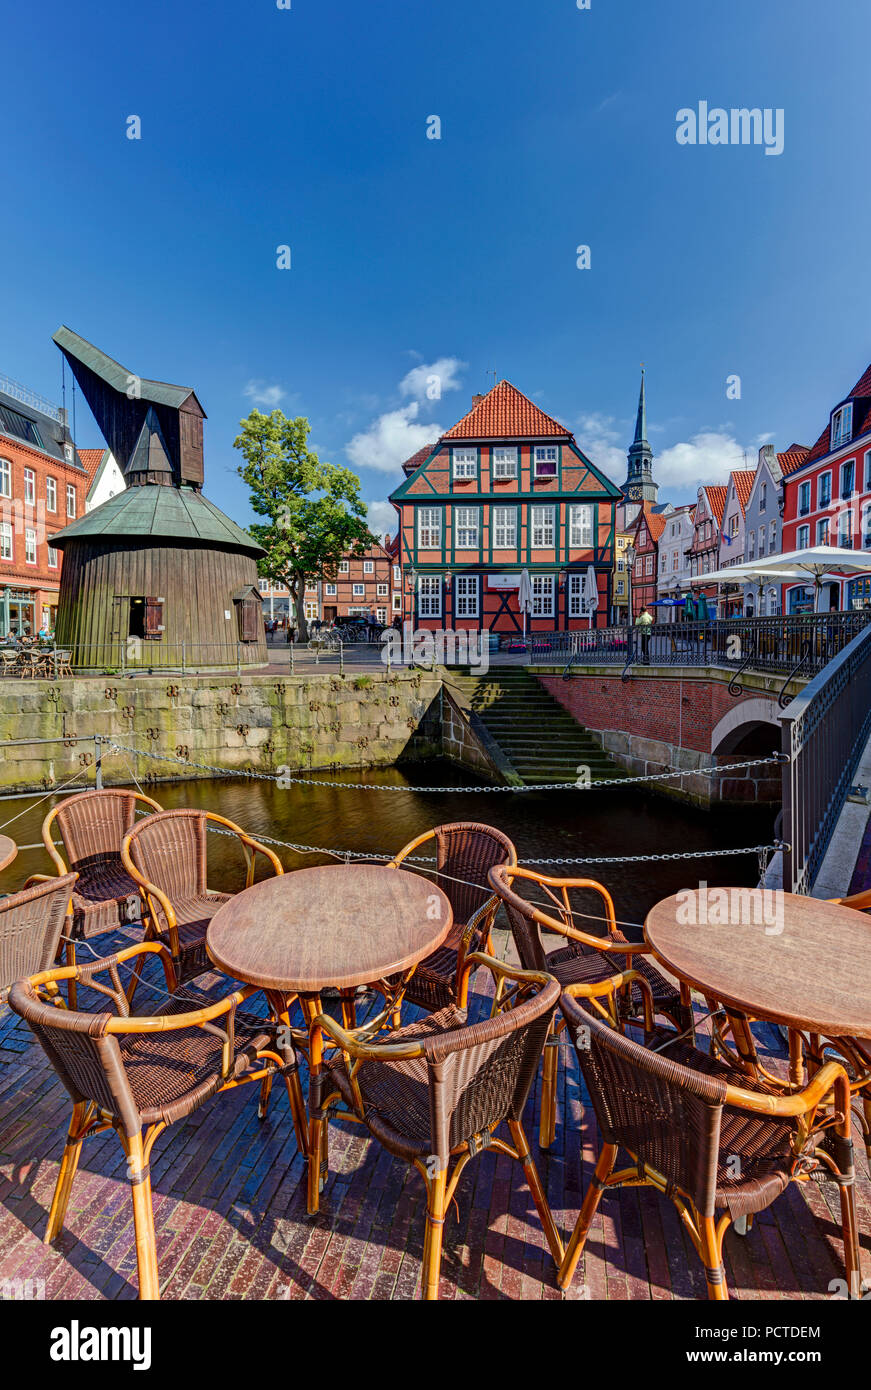 Wooden crane, Hanse harbour, half-timbered houses, Stade, Altes Land, Niederelbe, Lower Saxony, Northern Germany, Germany, Europe - Stock Image